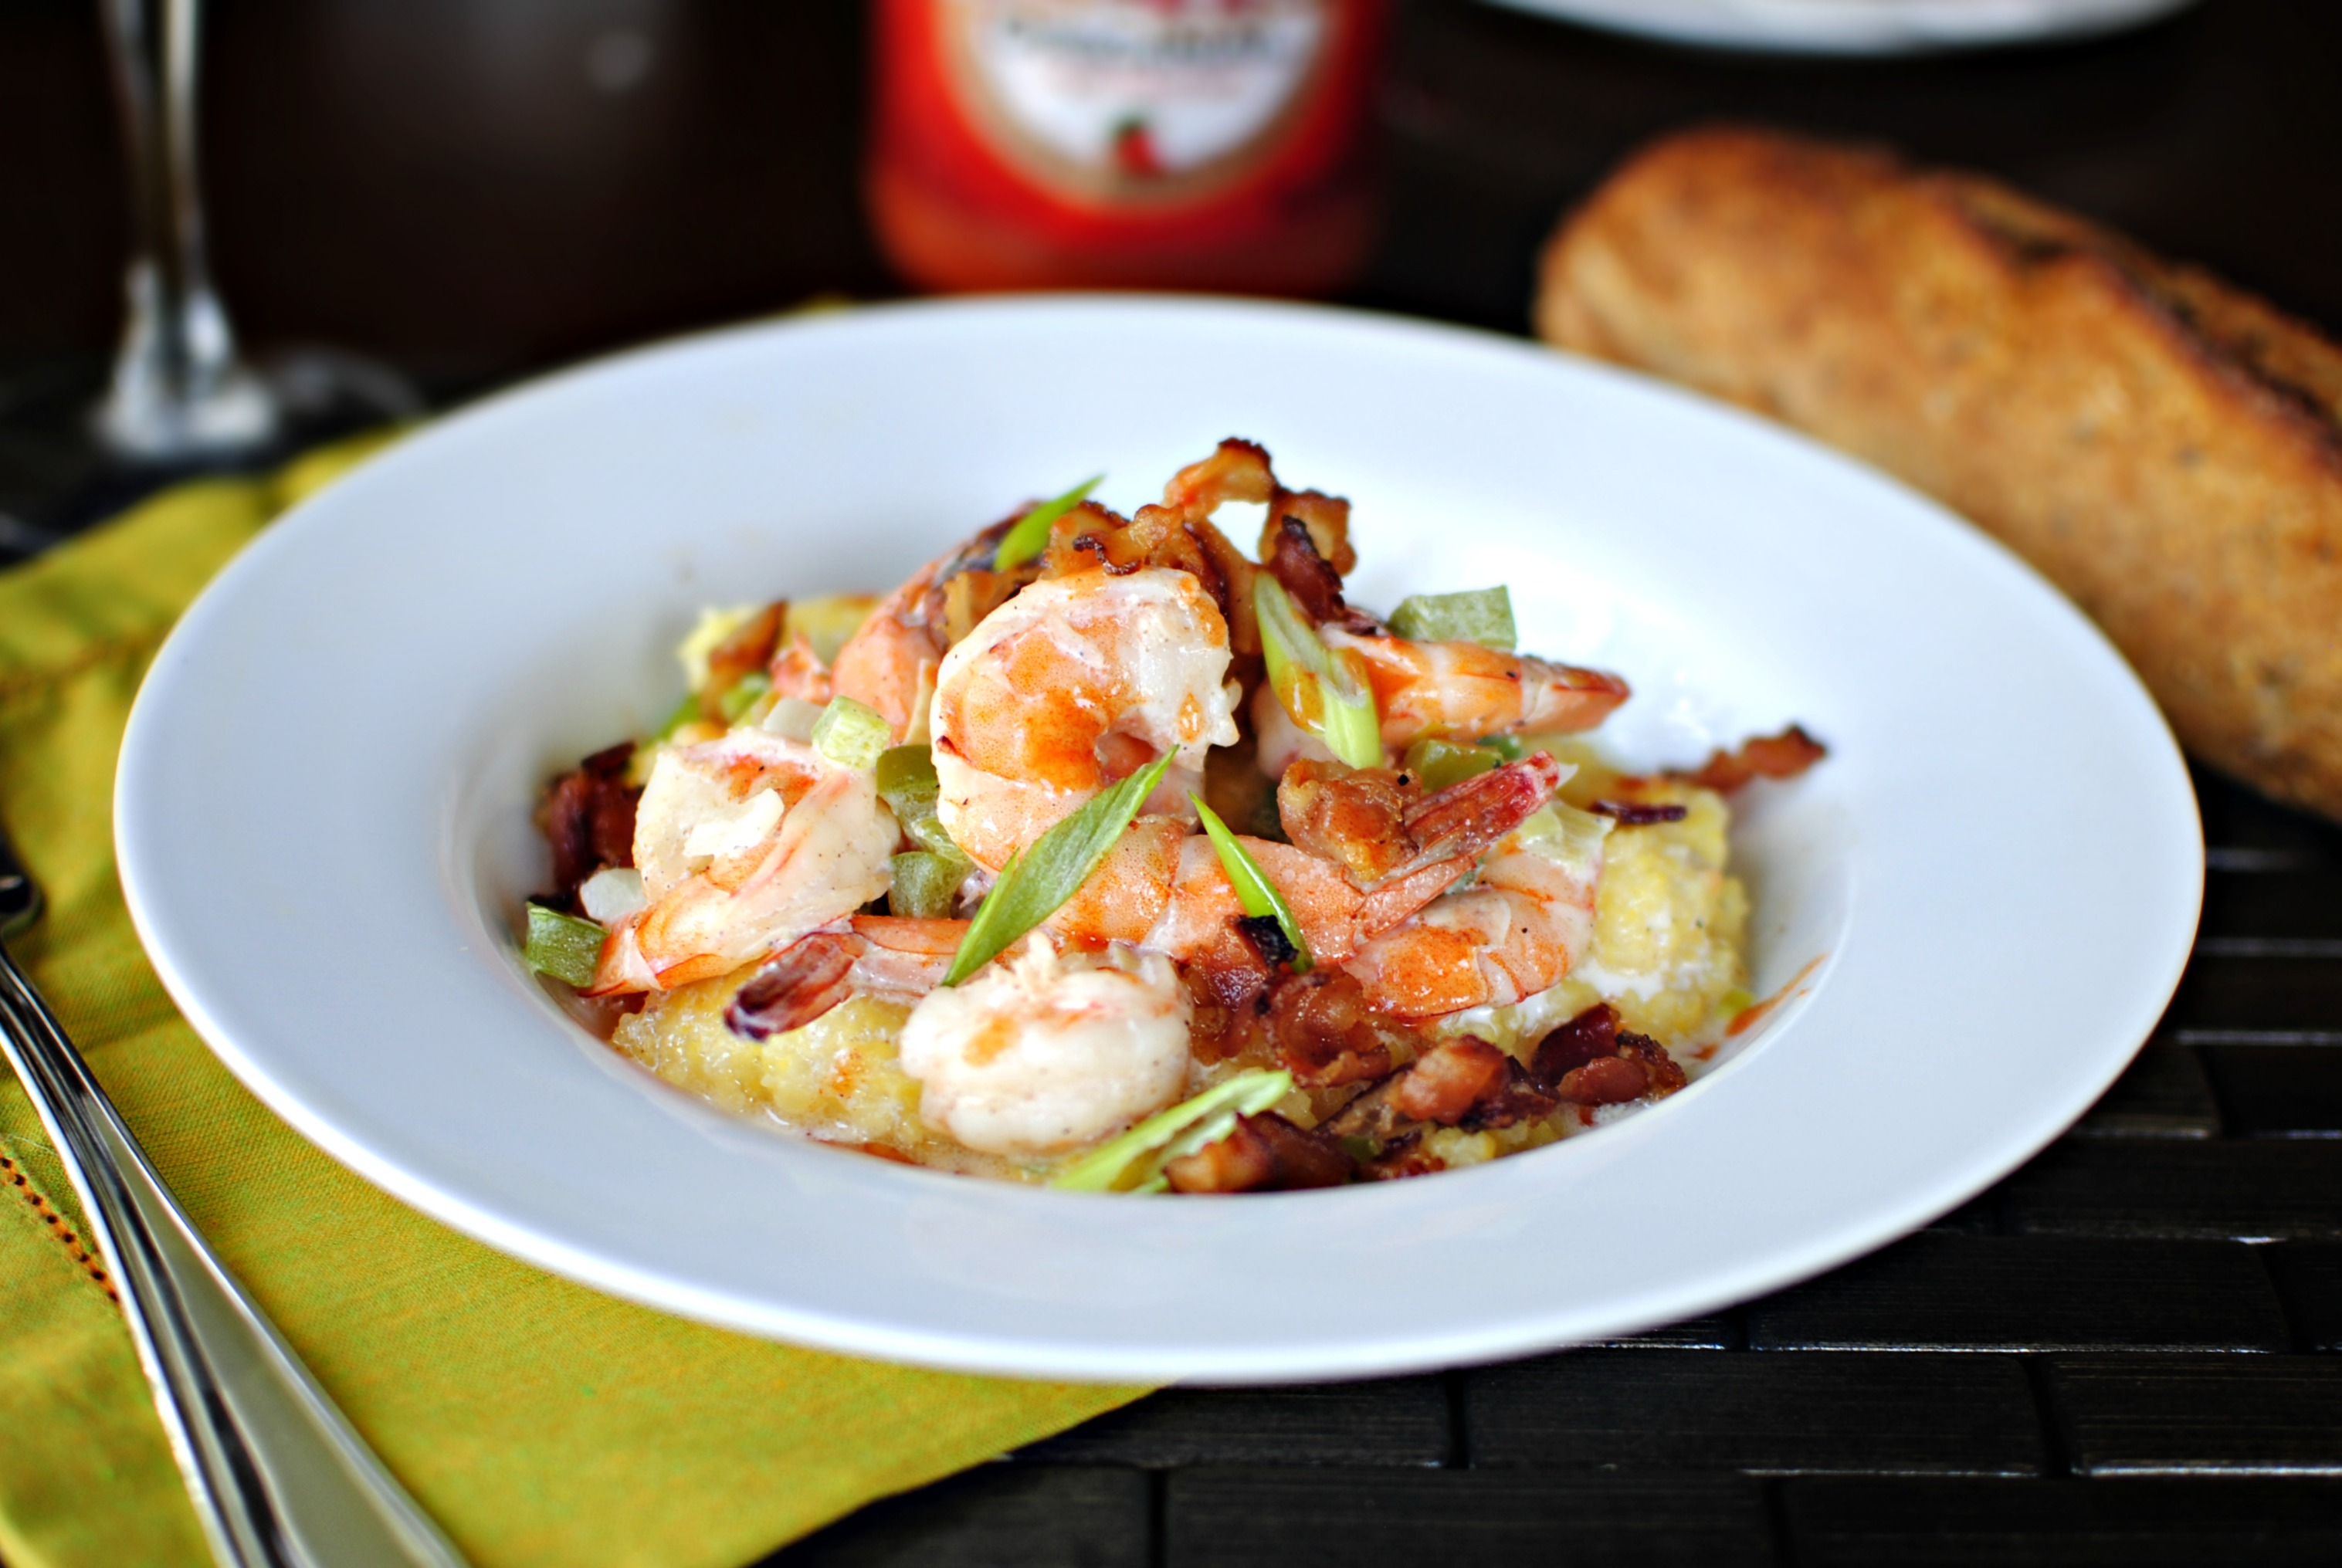 ... Scratch Jenna Webbers Lowcountry Shrimp & Grits 03 - Simply Scratch